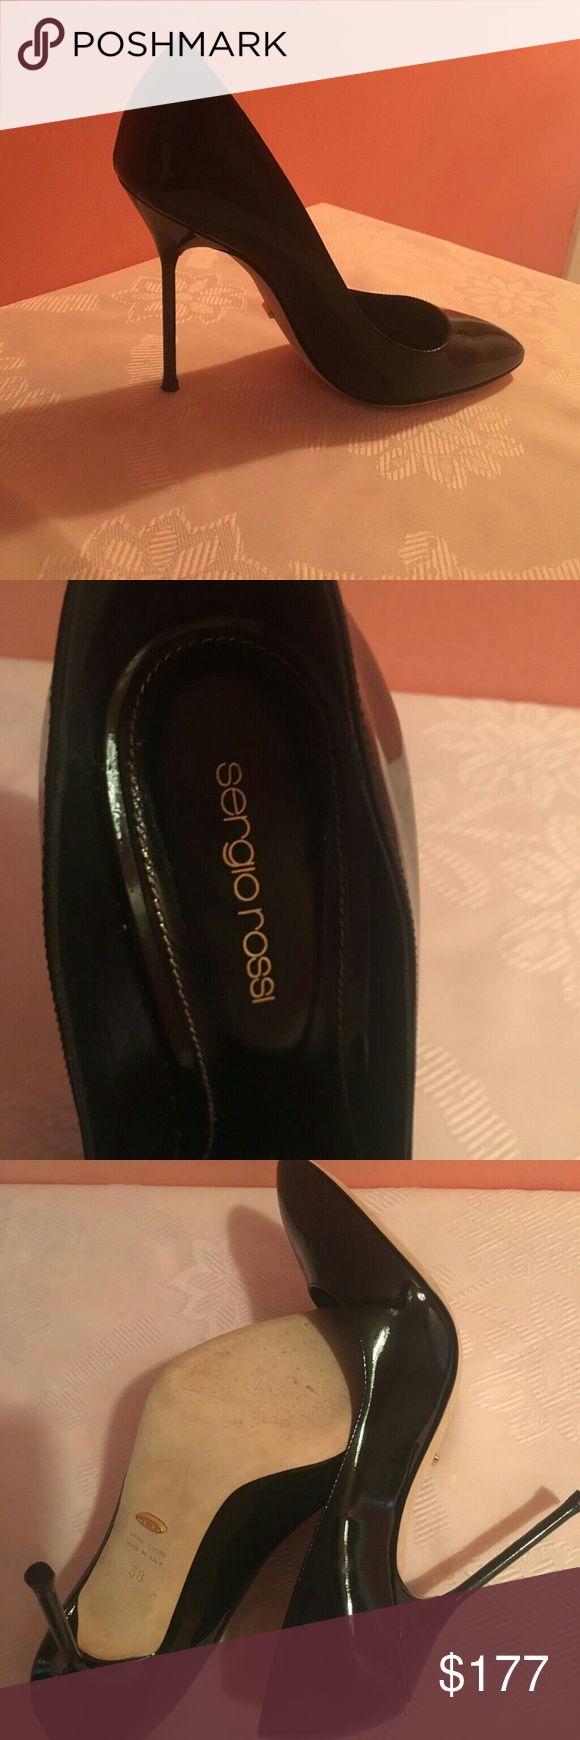 Sergio Rossi Black Patent Pumps Very sexy Sergio Rossi black patent leather pumps    Worn once    Runs a bid small    Excellent condition Sergio Rossi Shoes Heels